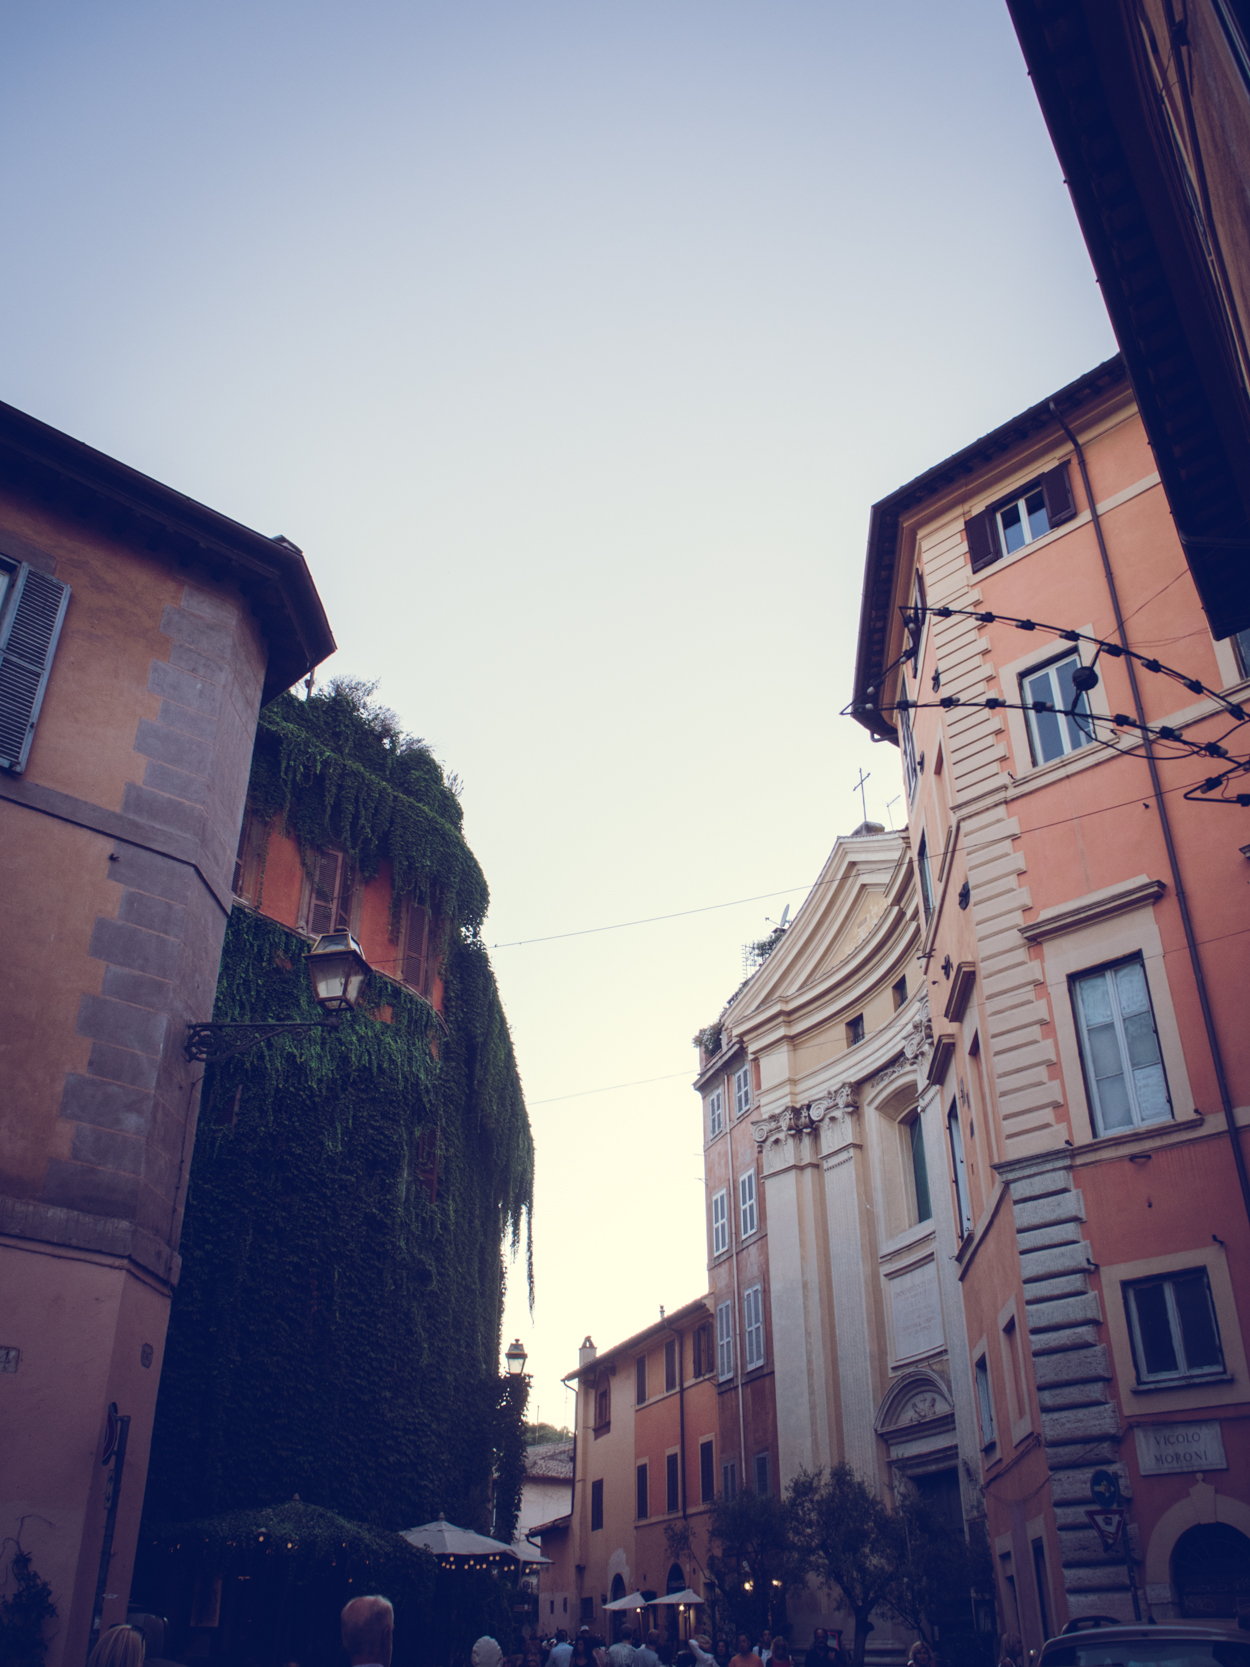 TRASTEVERE || THECHICITALIAN || My outfit & images from our visit to Trastevere